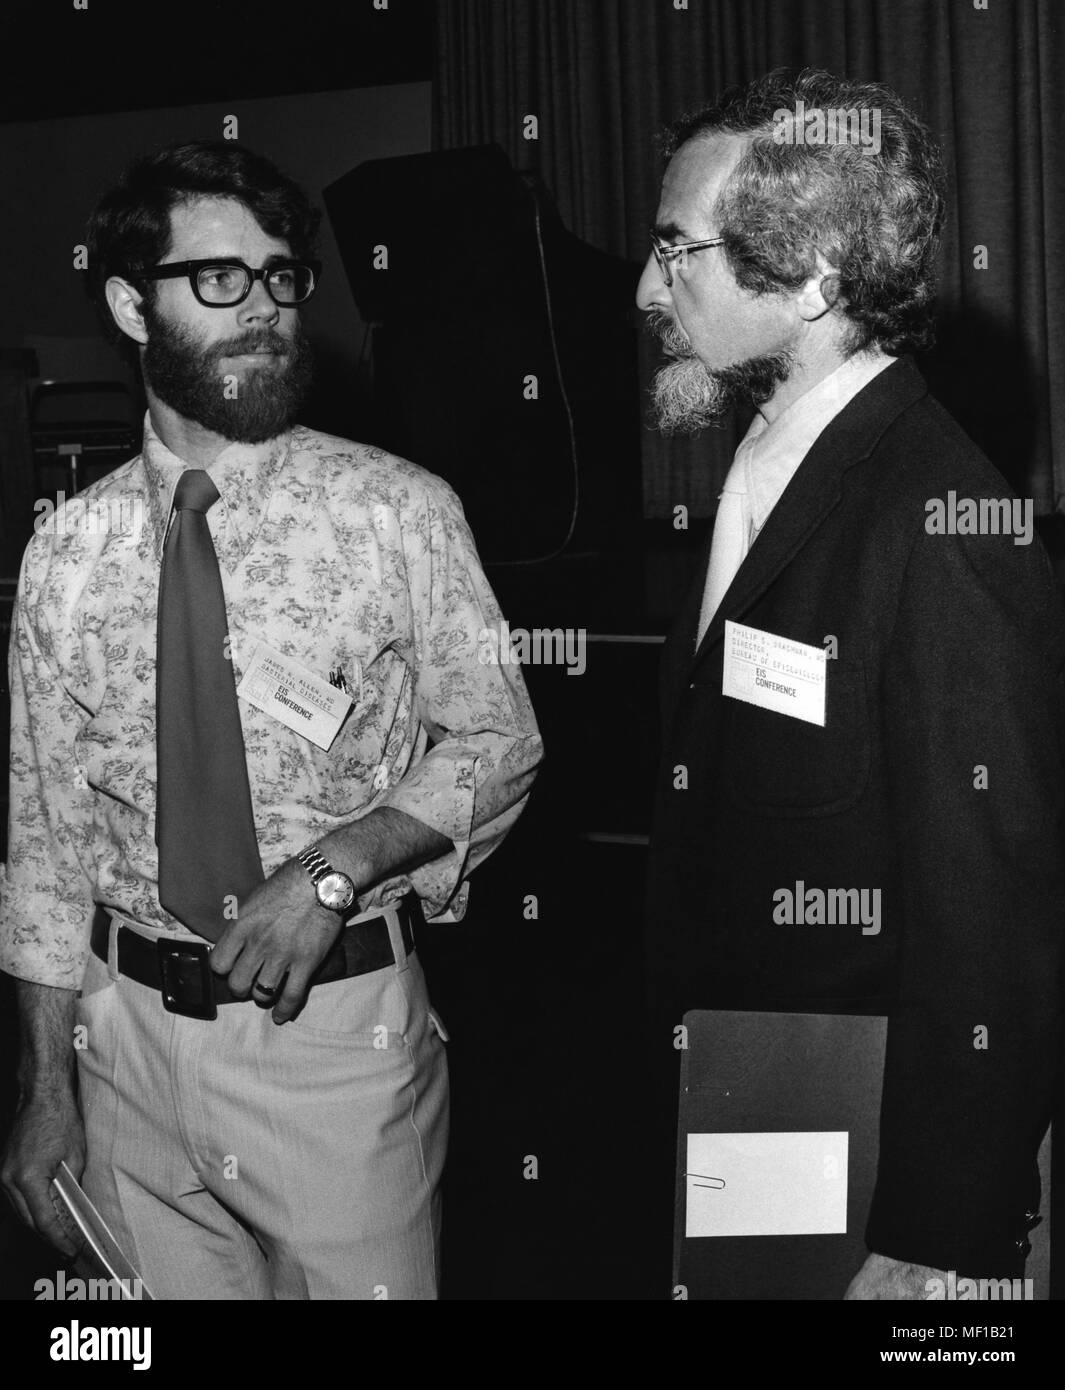 James R. Allen, M.D. M.P.H. and E.I.S. Class of '72, and Philip S. Brachman, M.D. and E.I.S. Class of '54 attending an annual Epidemic Intelligence Service (EIS) Conference, 1976. Image courtesy Centers for Disease Control (CDC). () - Stock Image